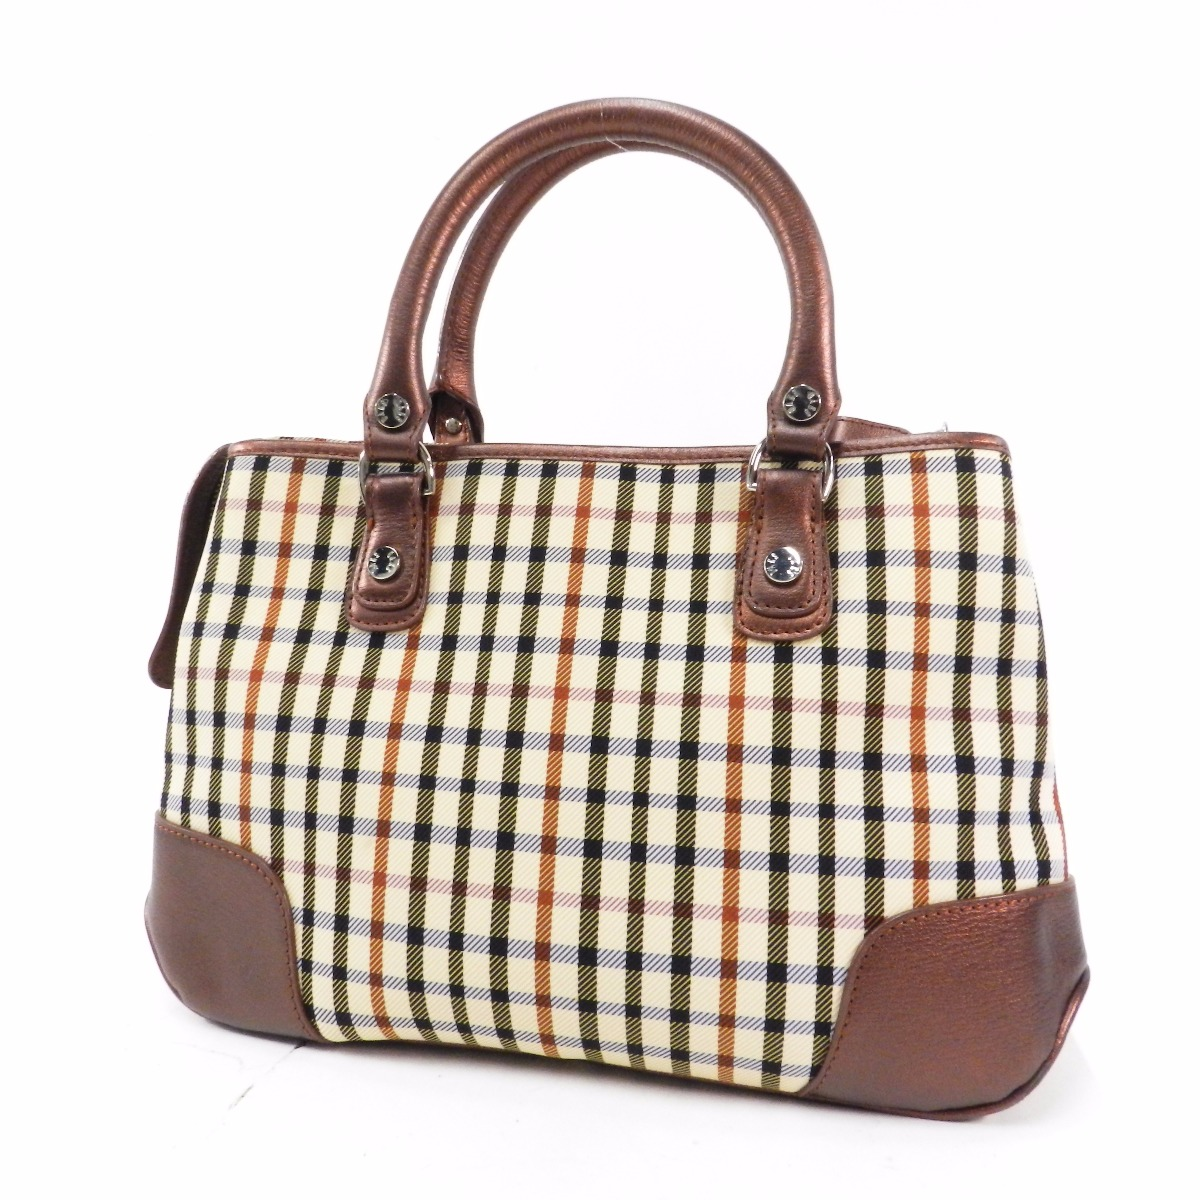 Authentic Daks Check Pattern Handbag Canvas